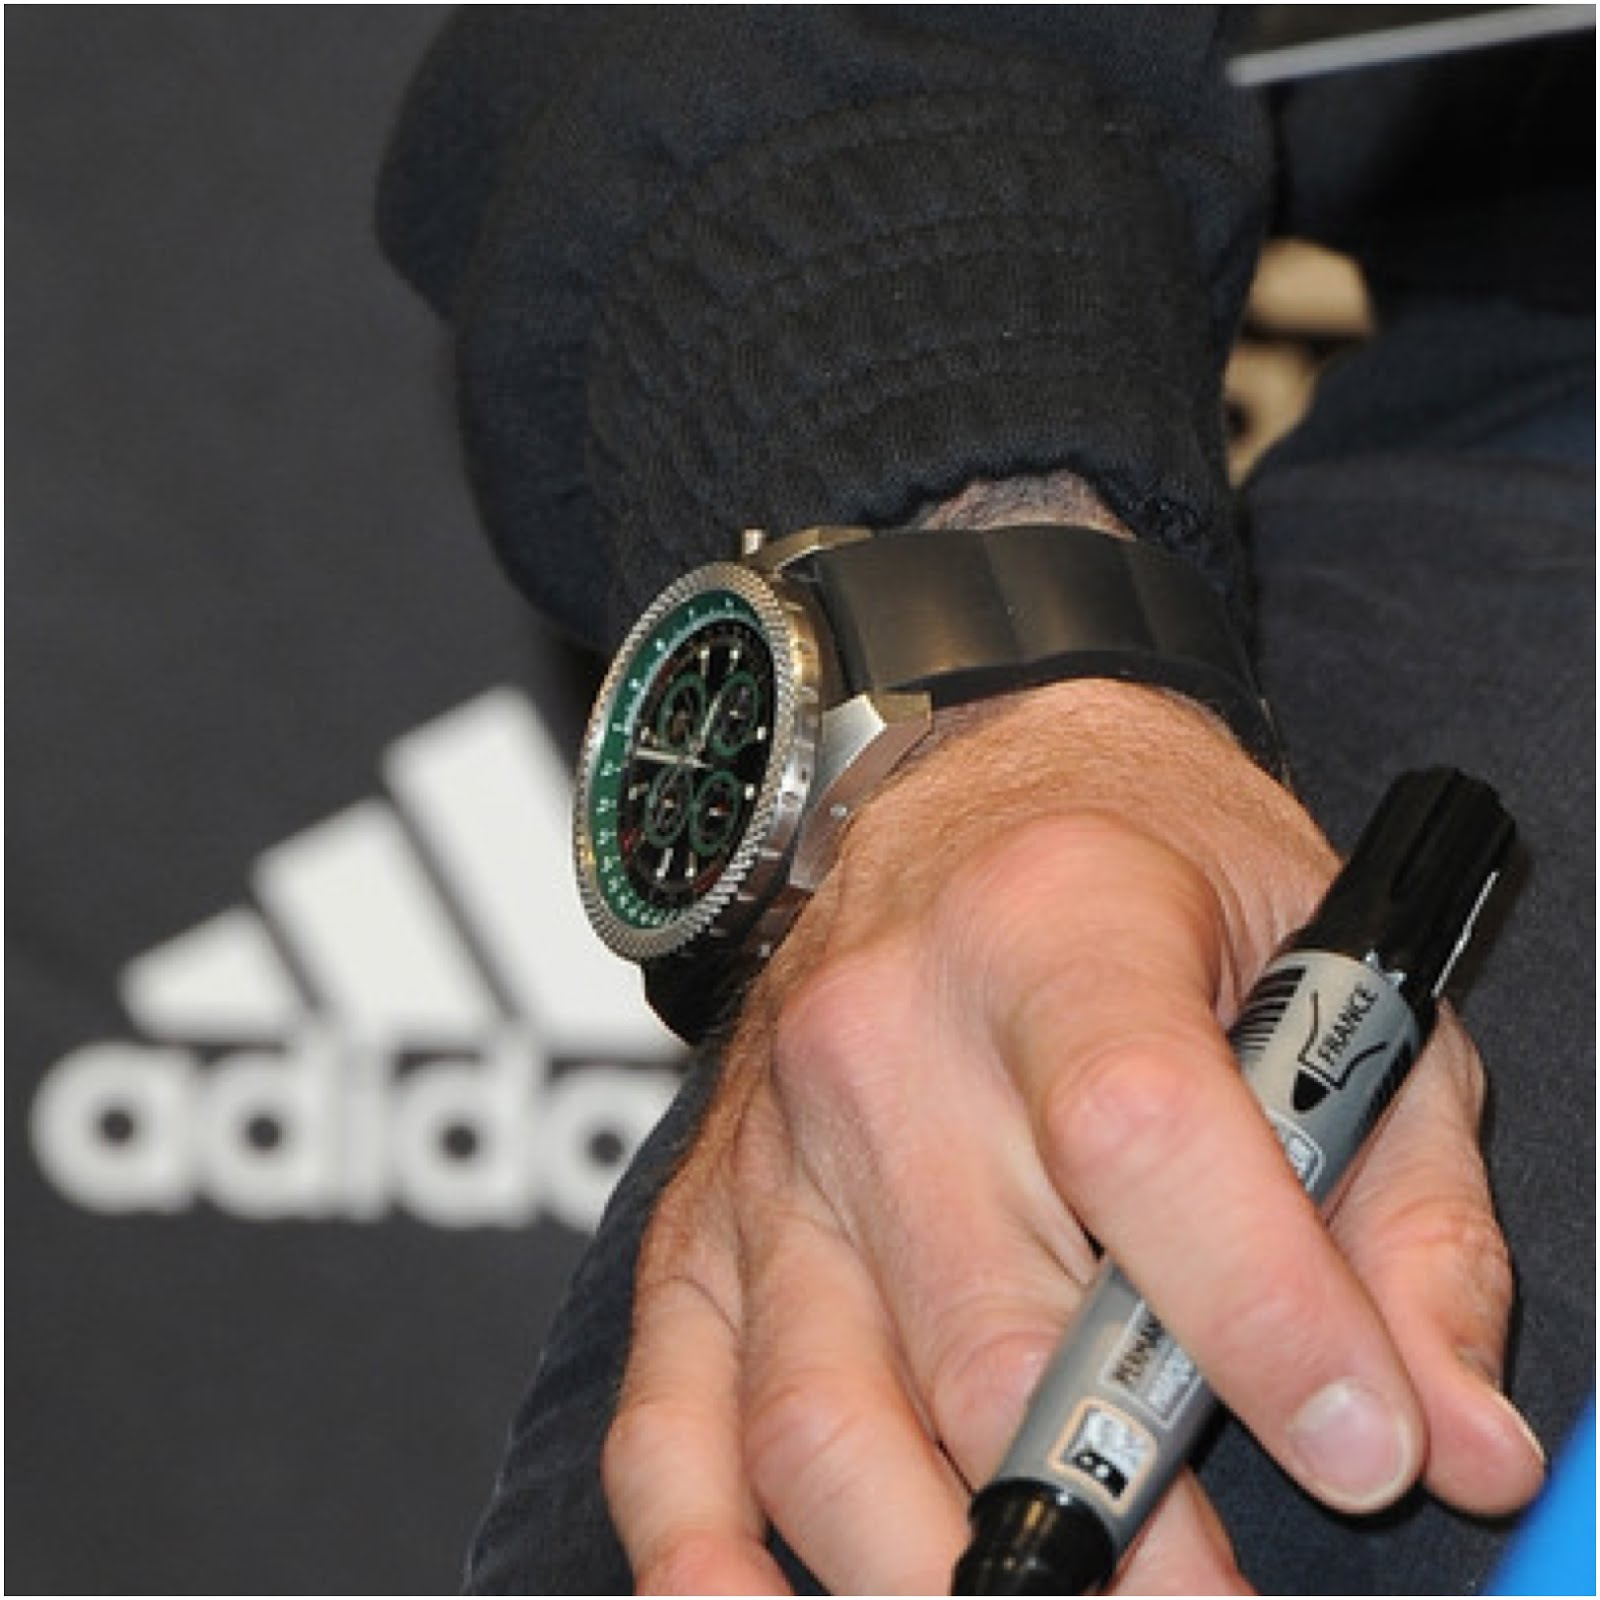 00O00 Menswear Blog David Beckham's Breitling for Bentley watch - Adidas store visit with Zinedine Zidane Paris February 2013